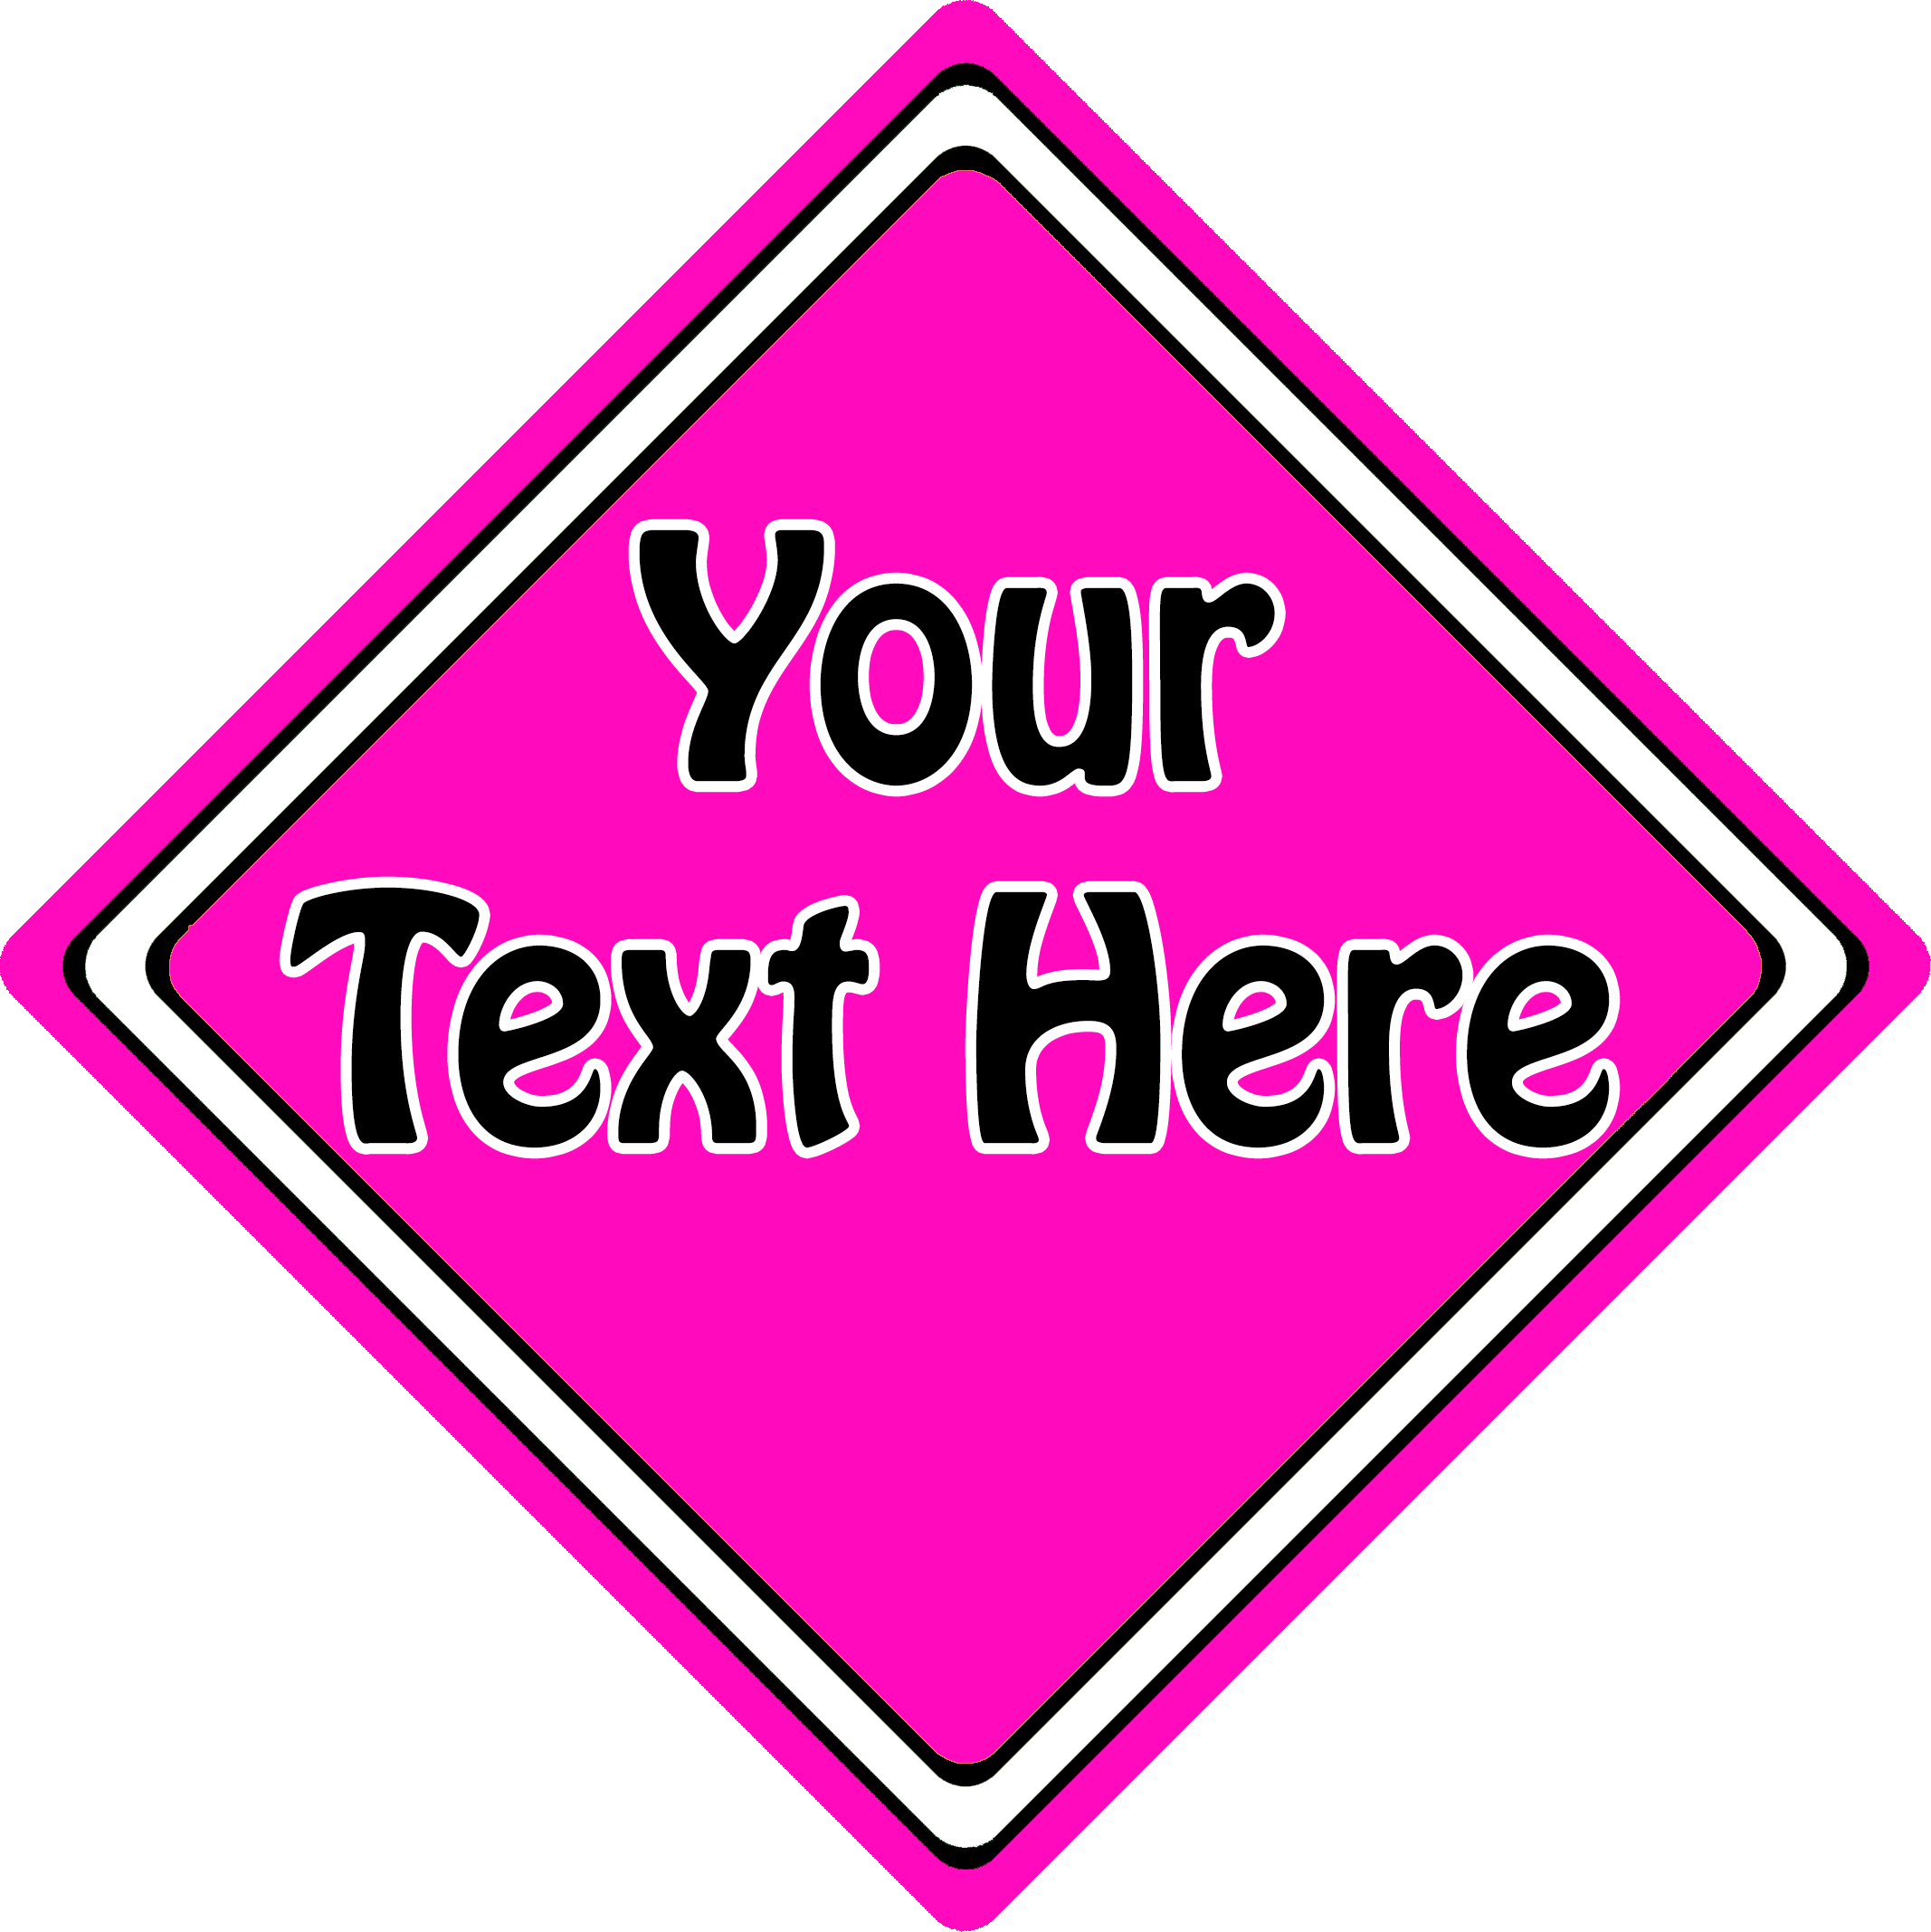 Create Your Own Sign Pink